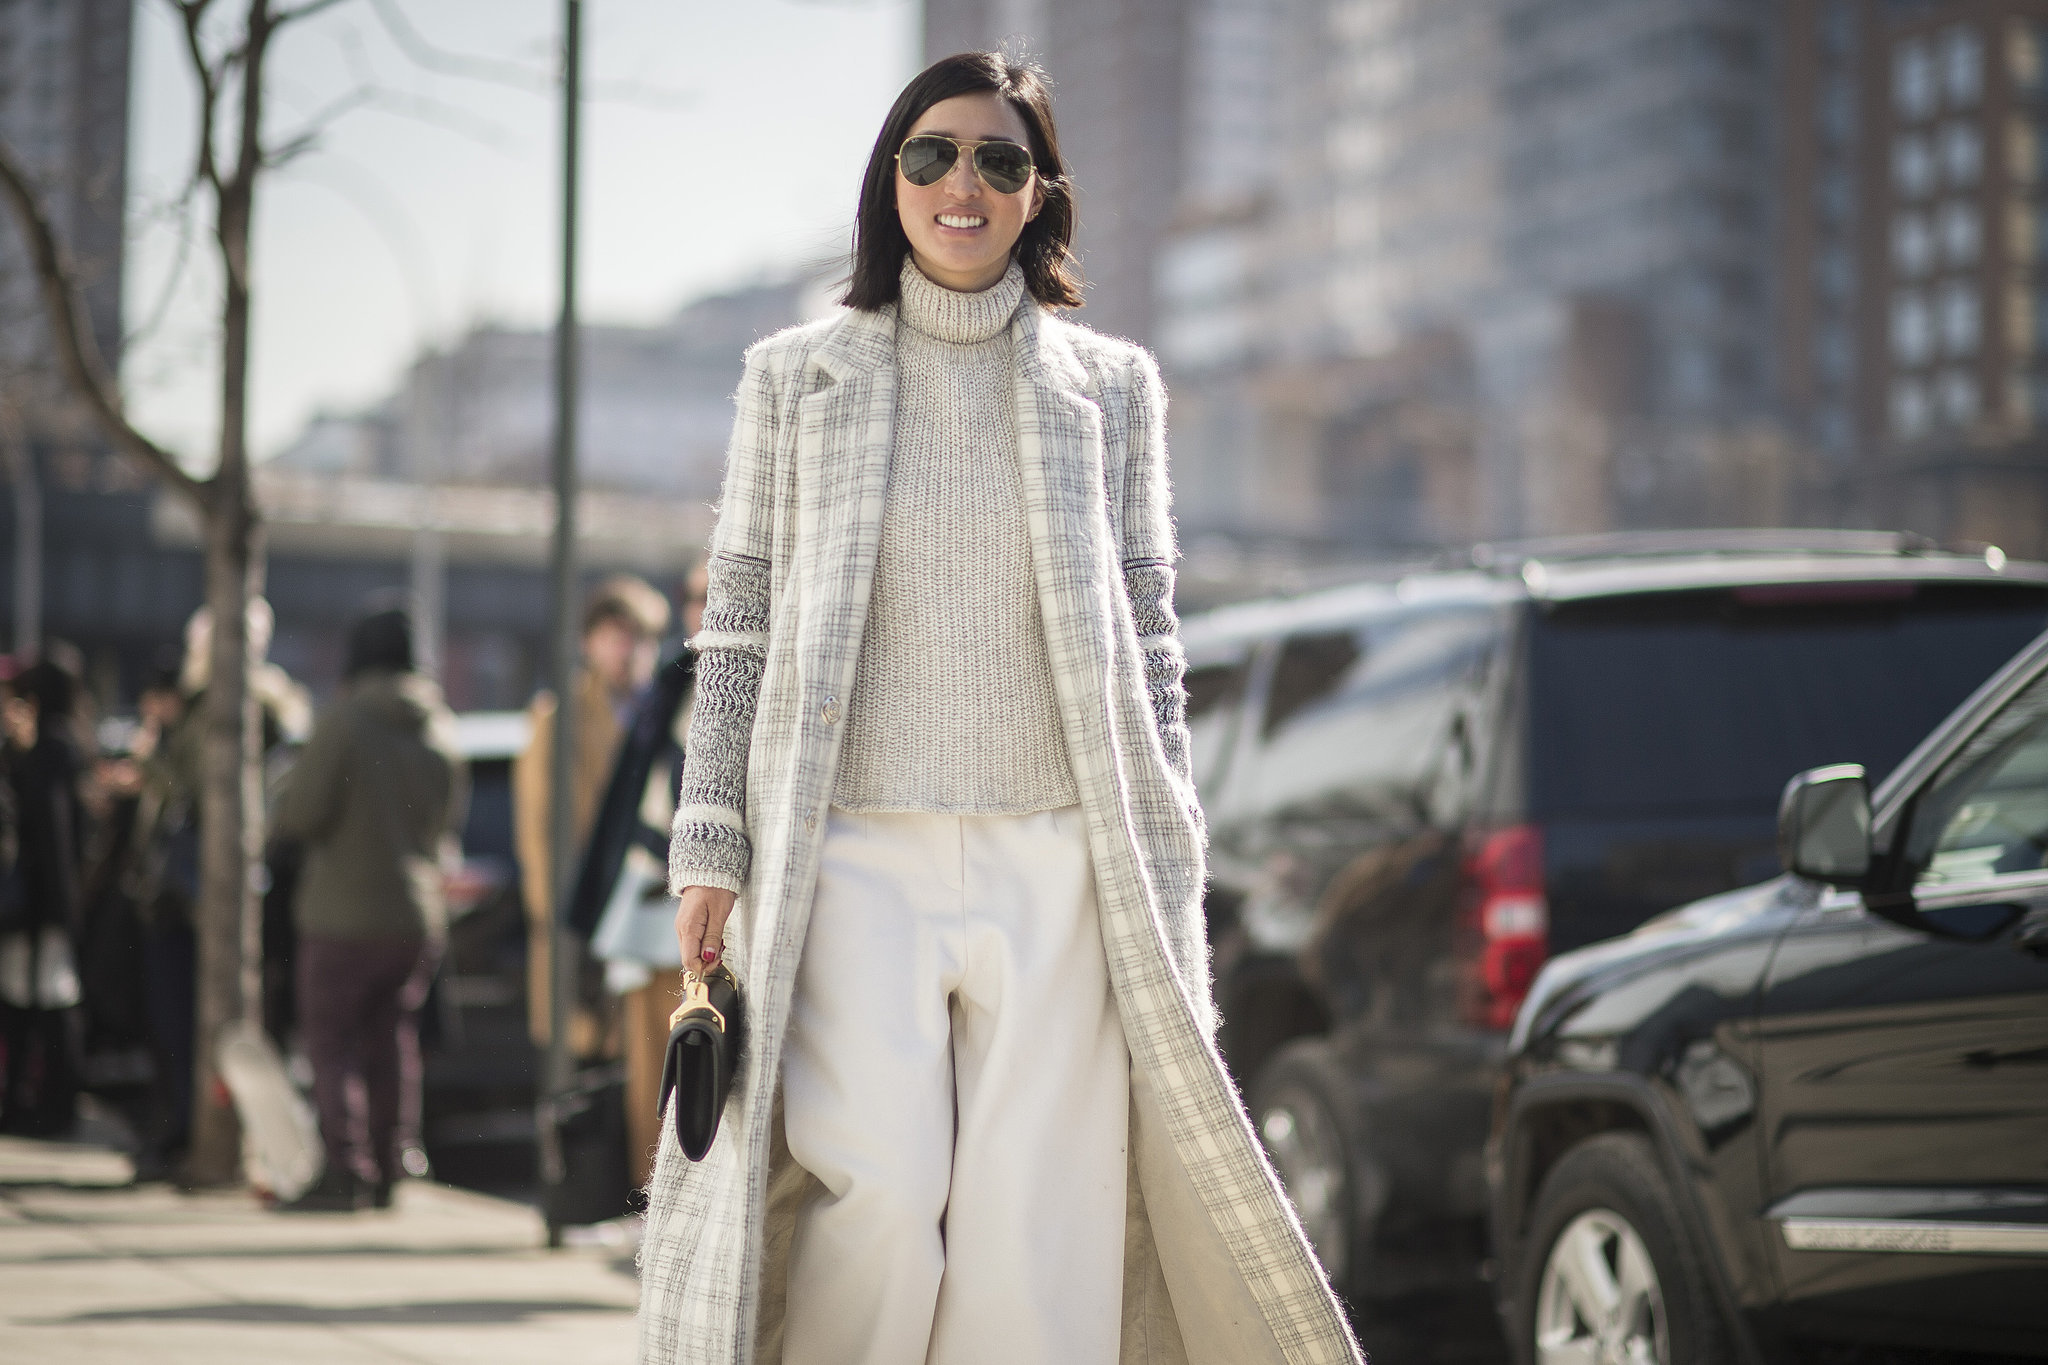 nyfw, winter whites, white pants, monchromatic, winter neutrals, tutleneck sweater, printed coat, cropped pants, culottes, street style, work